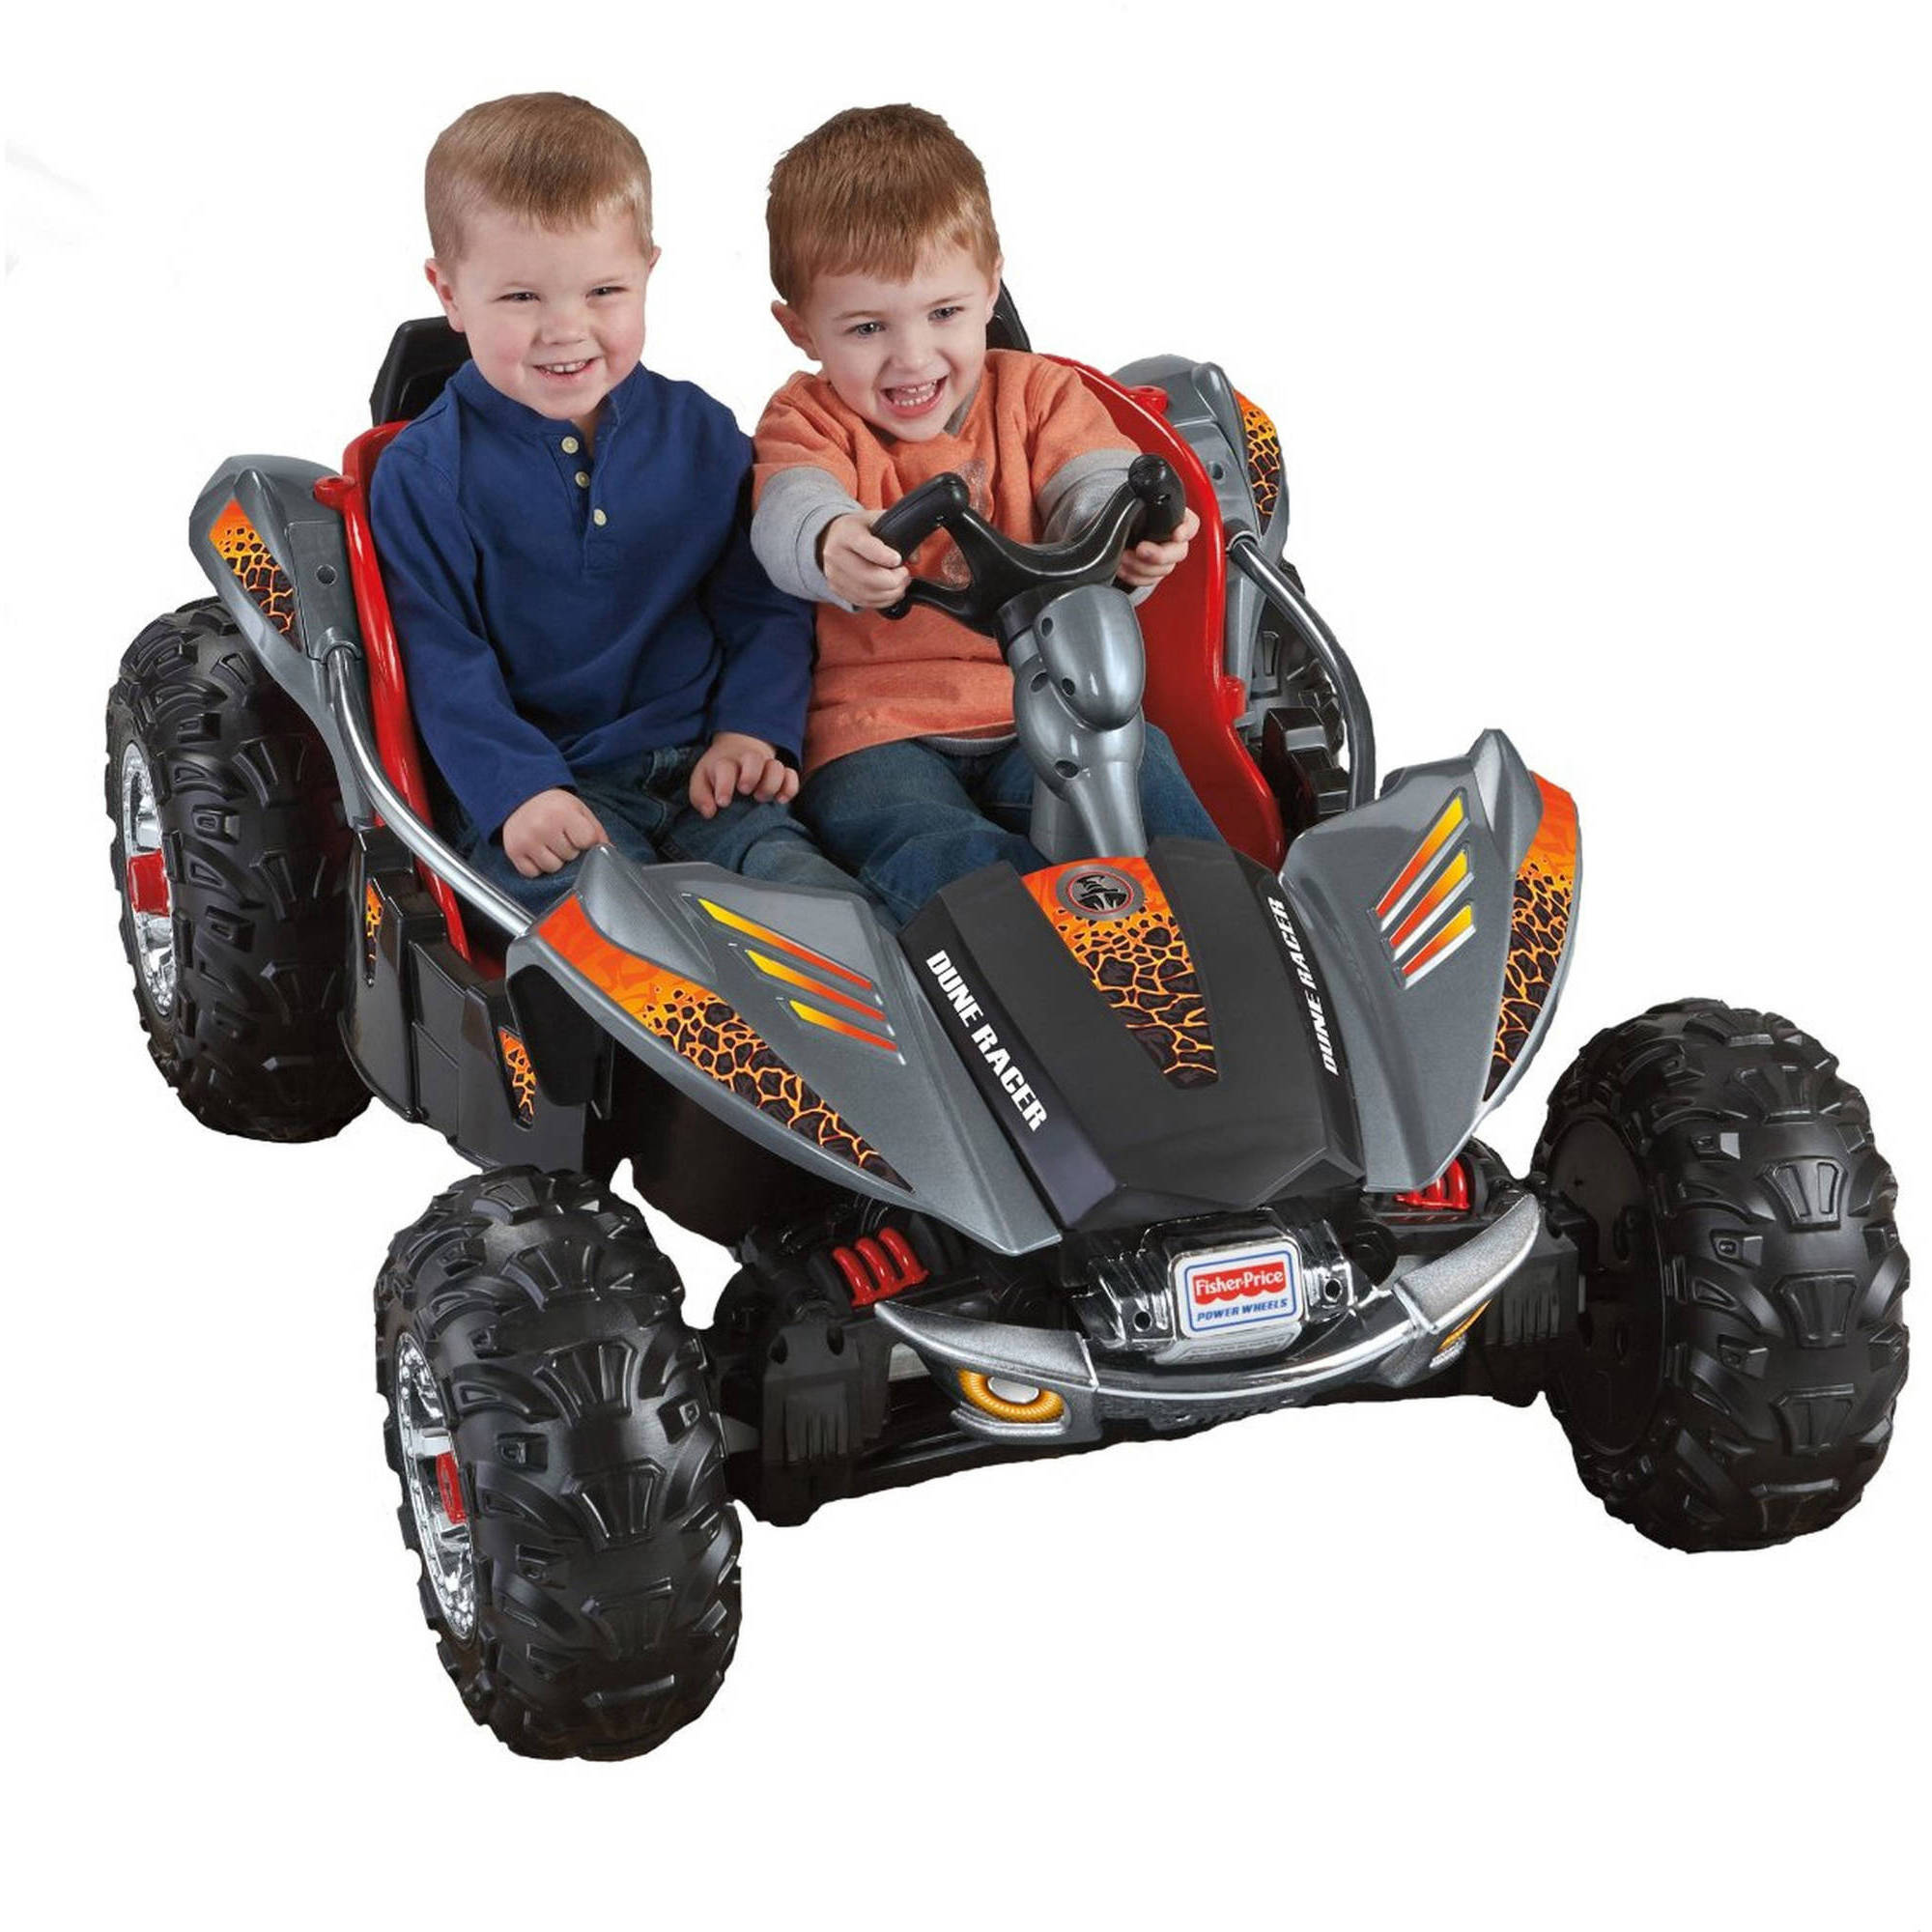 Fisher-Price Power Wheels Dune Racer 12-Volt Battery-Powered Ride-on